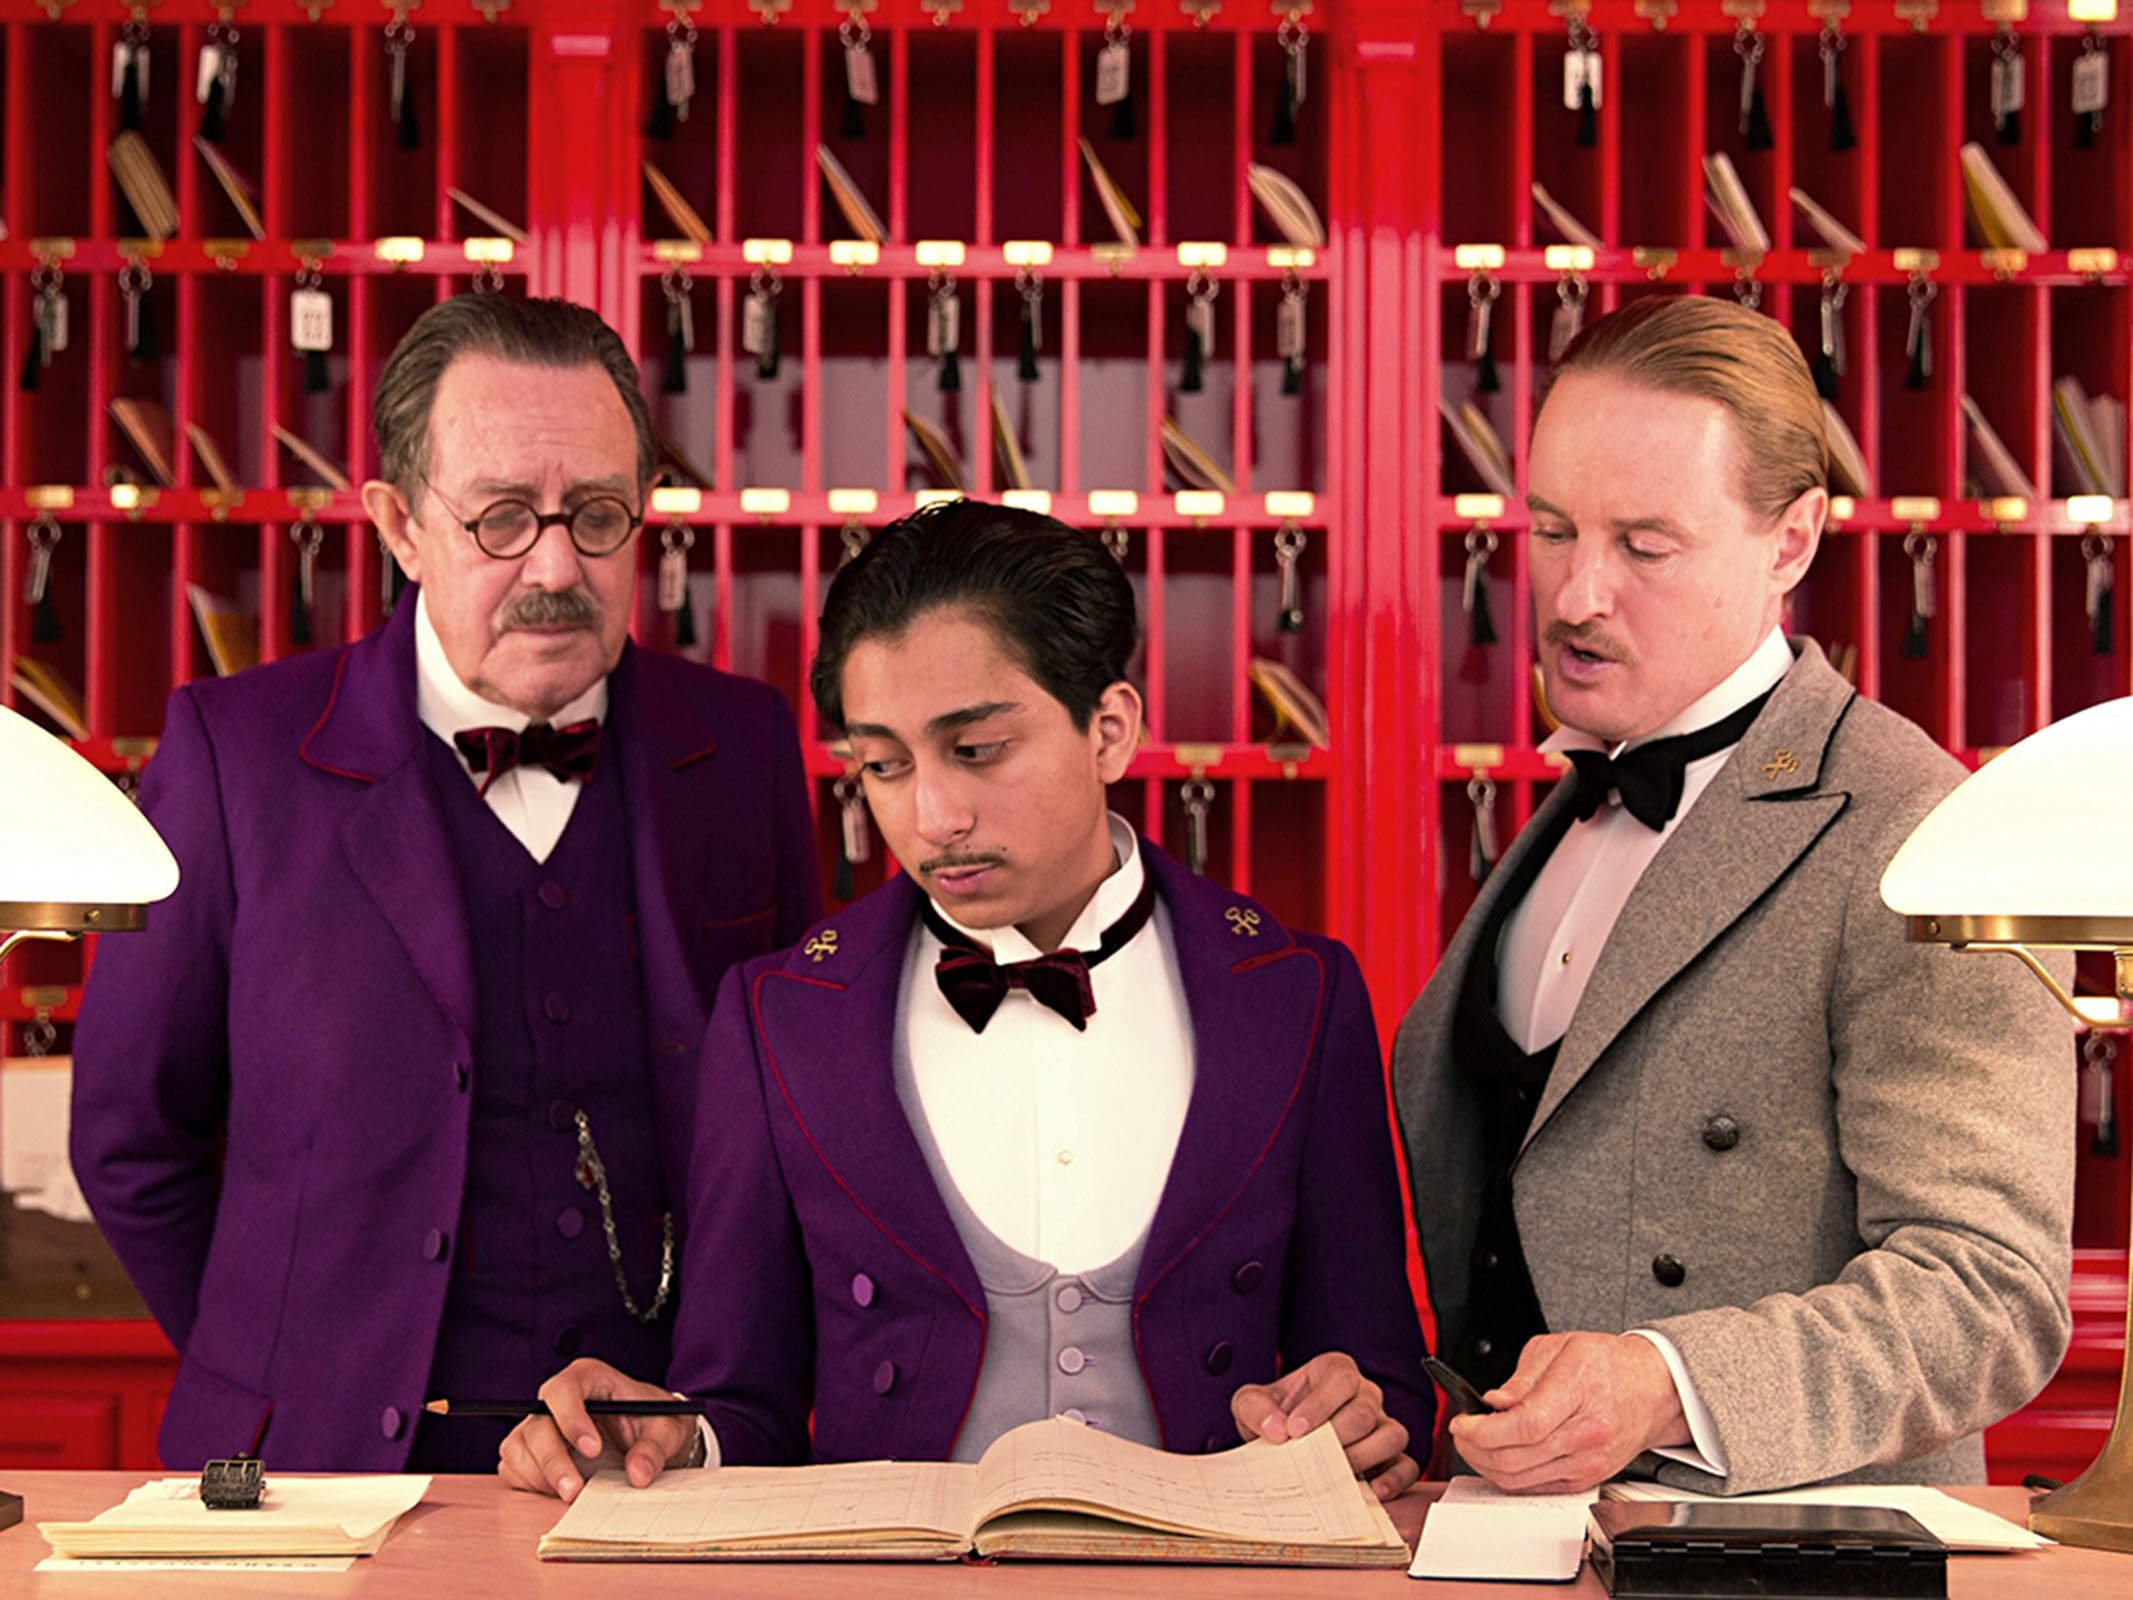 Film Plus: The Grand Budapest Hotel